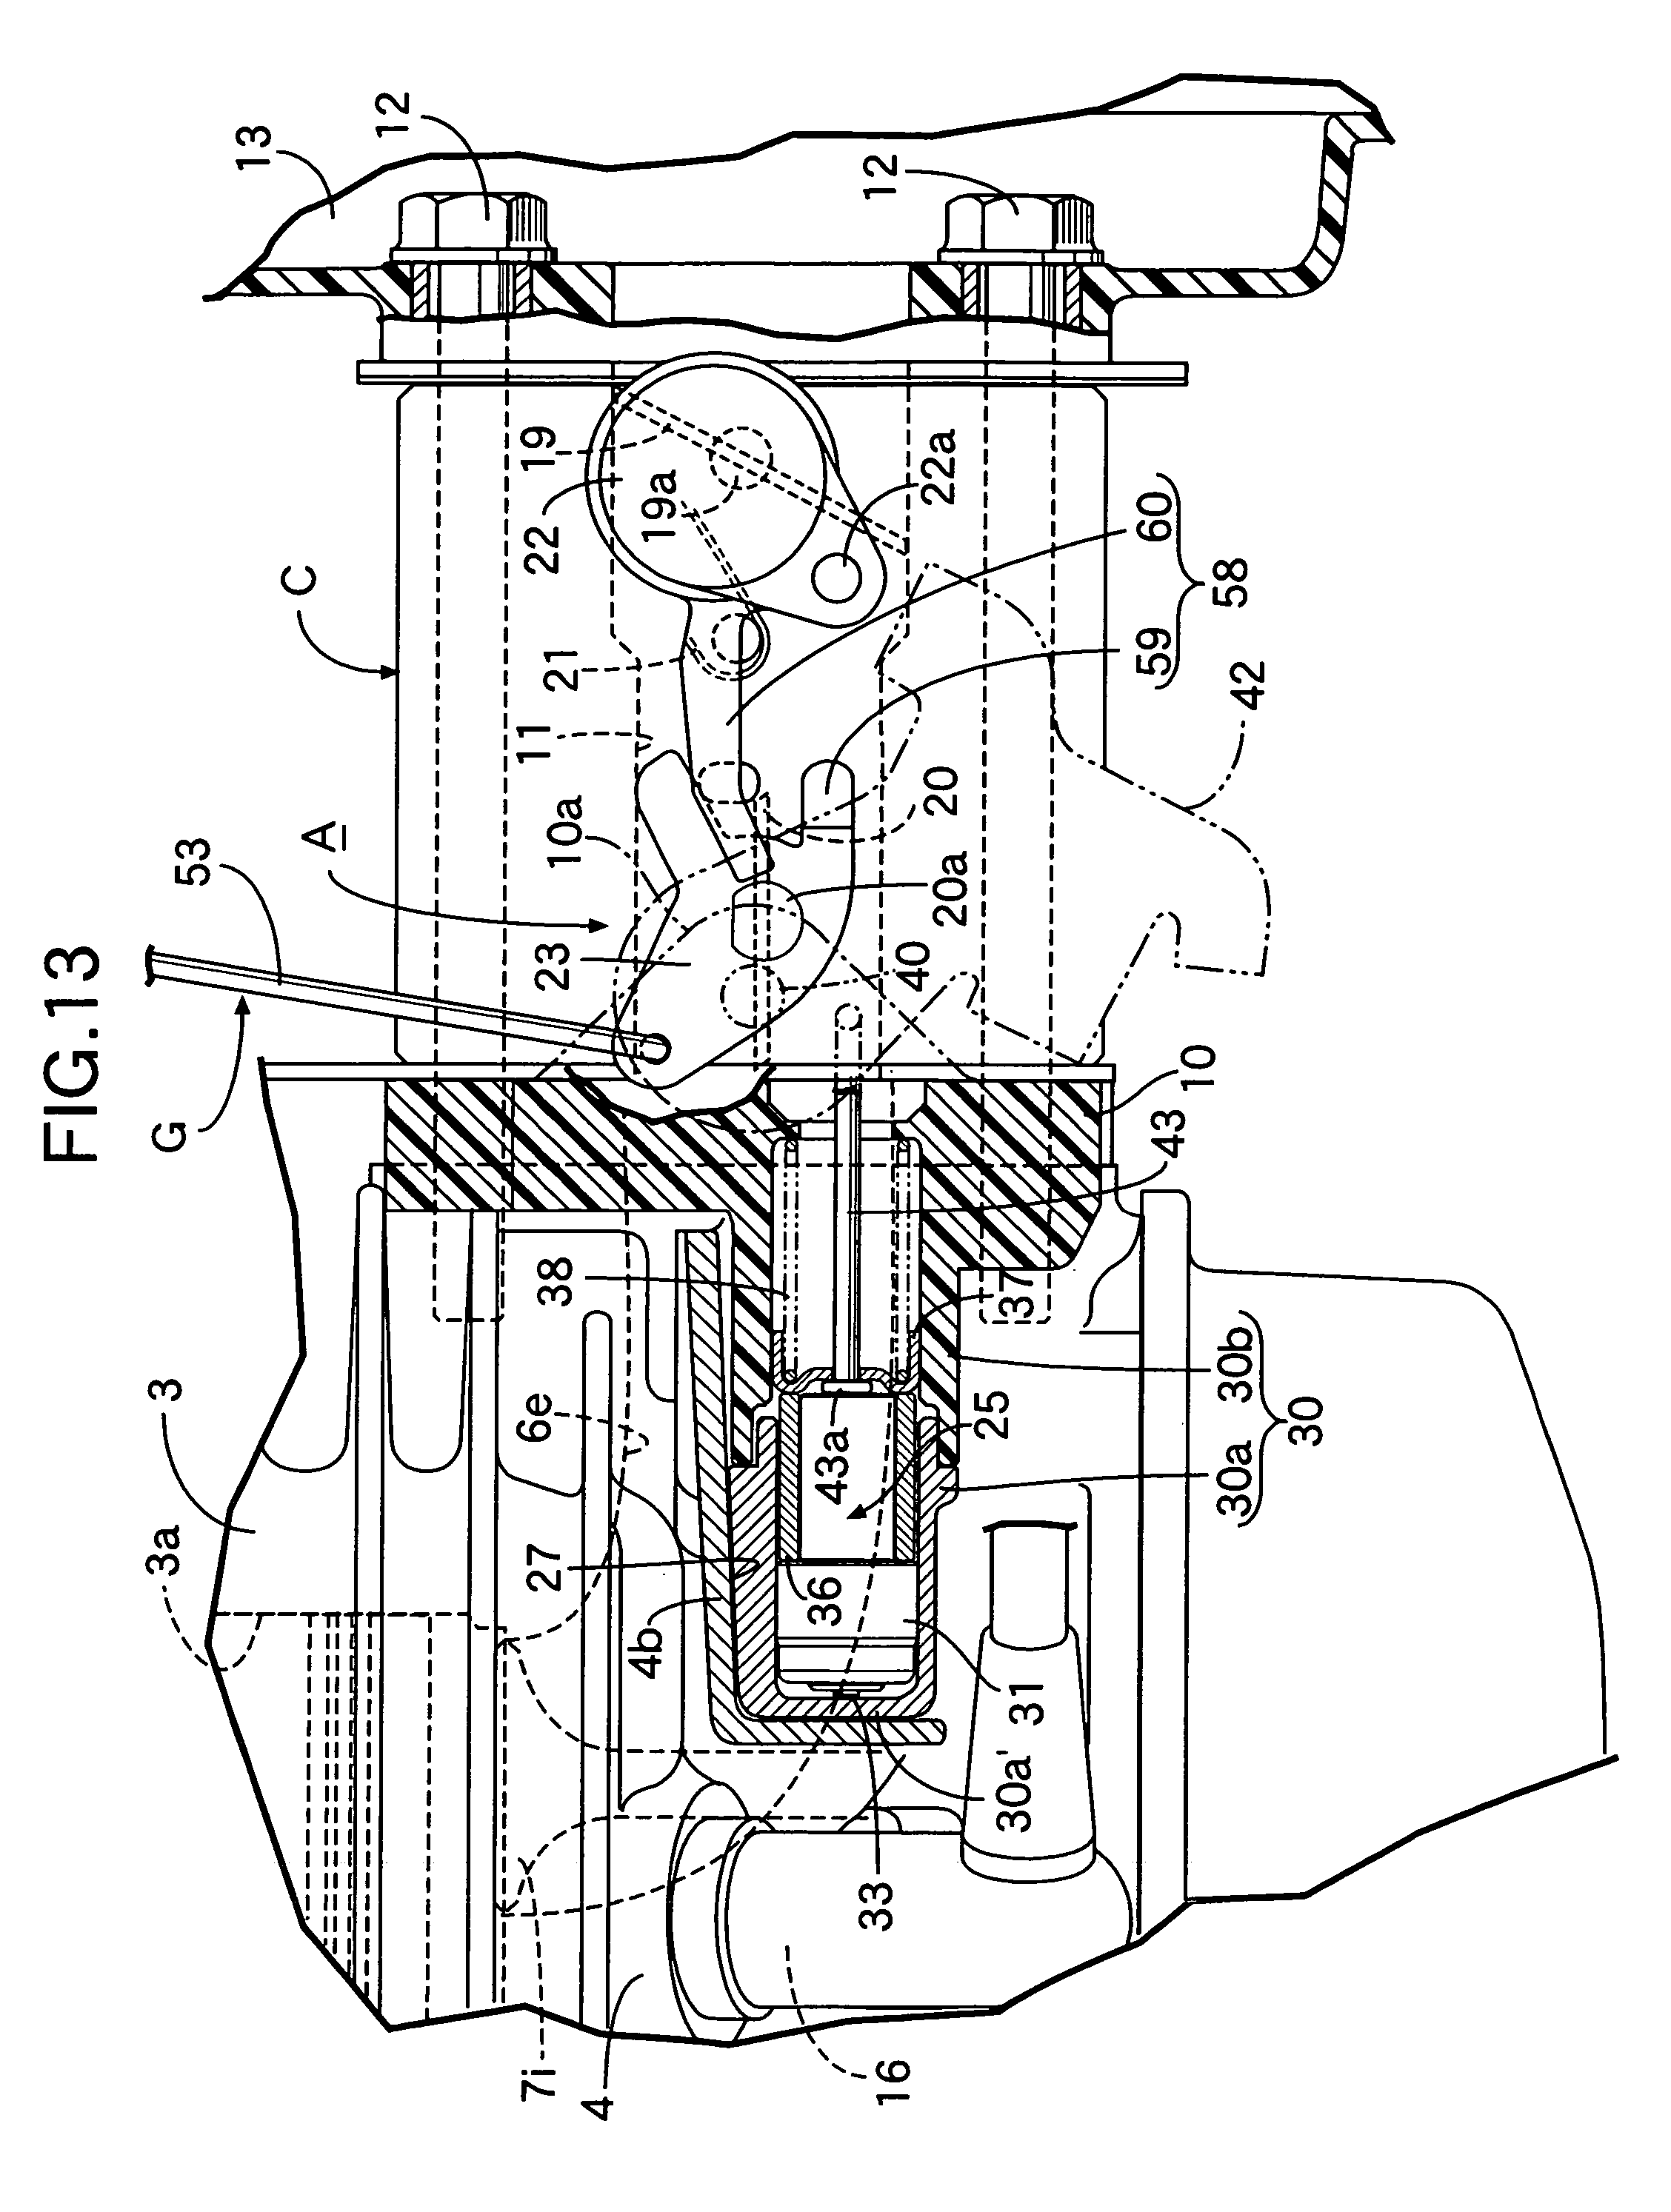 patent us7128309 - automatic choke system for carburetor